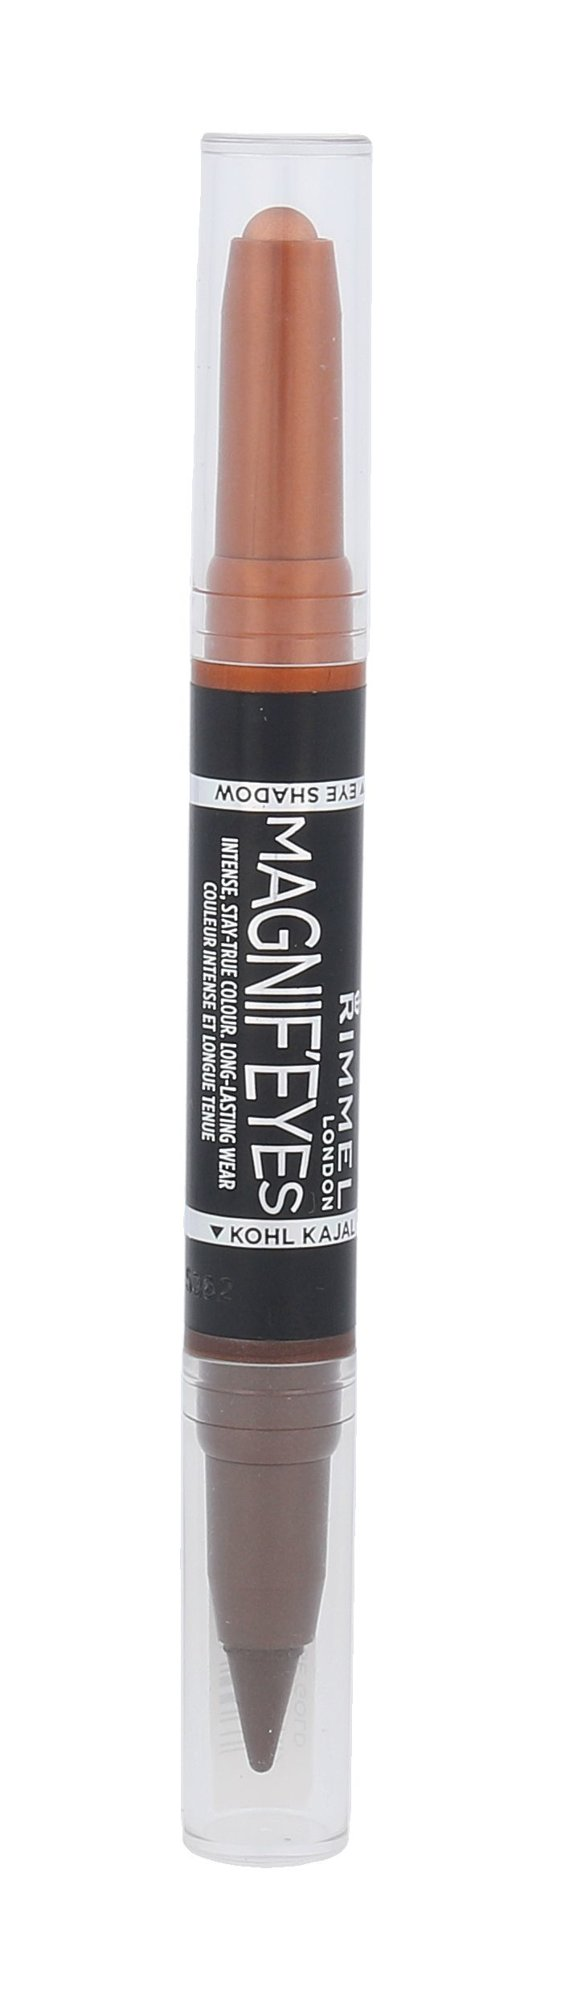 Rimmel London Magnif Eyes Cosmetic 1,6ml 002 Kissed By A Rose Gold